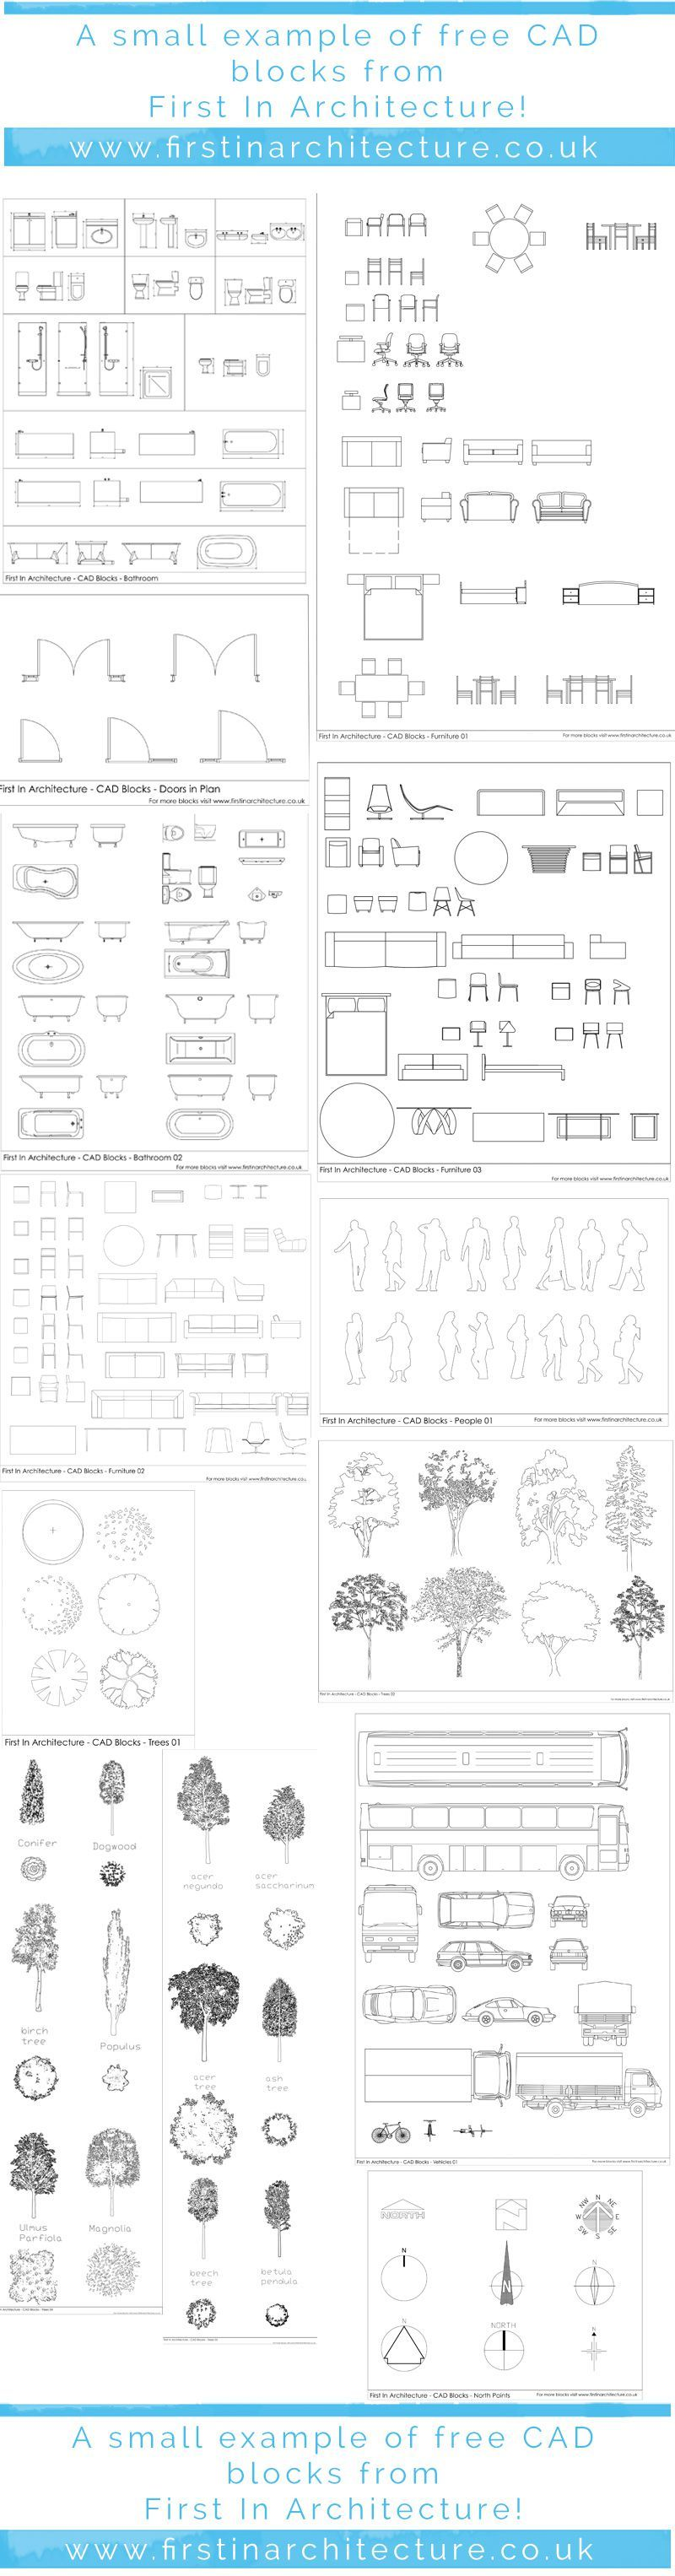 Architectural Drawing Symbols Free Download at GetDrawings.com ...